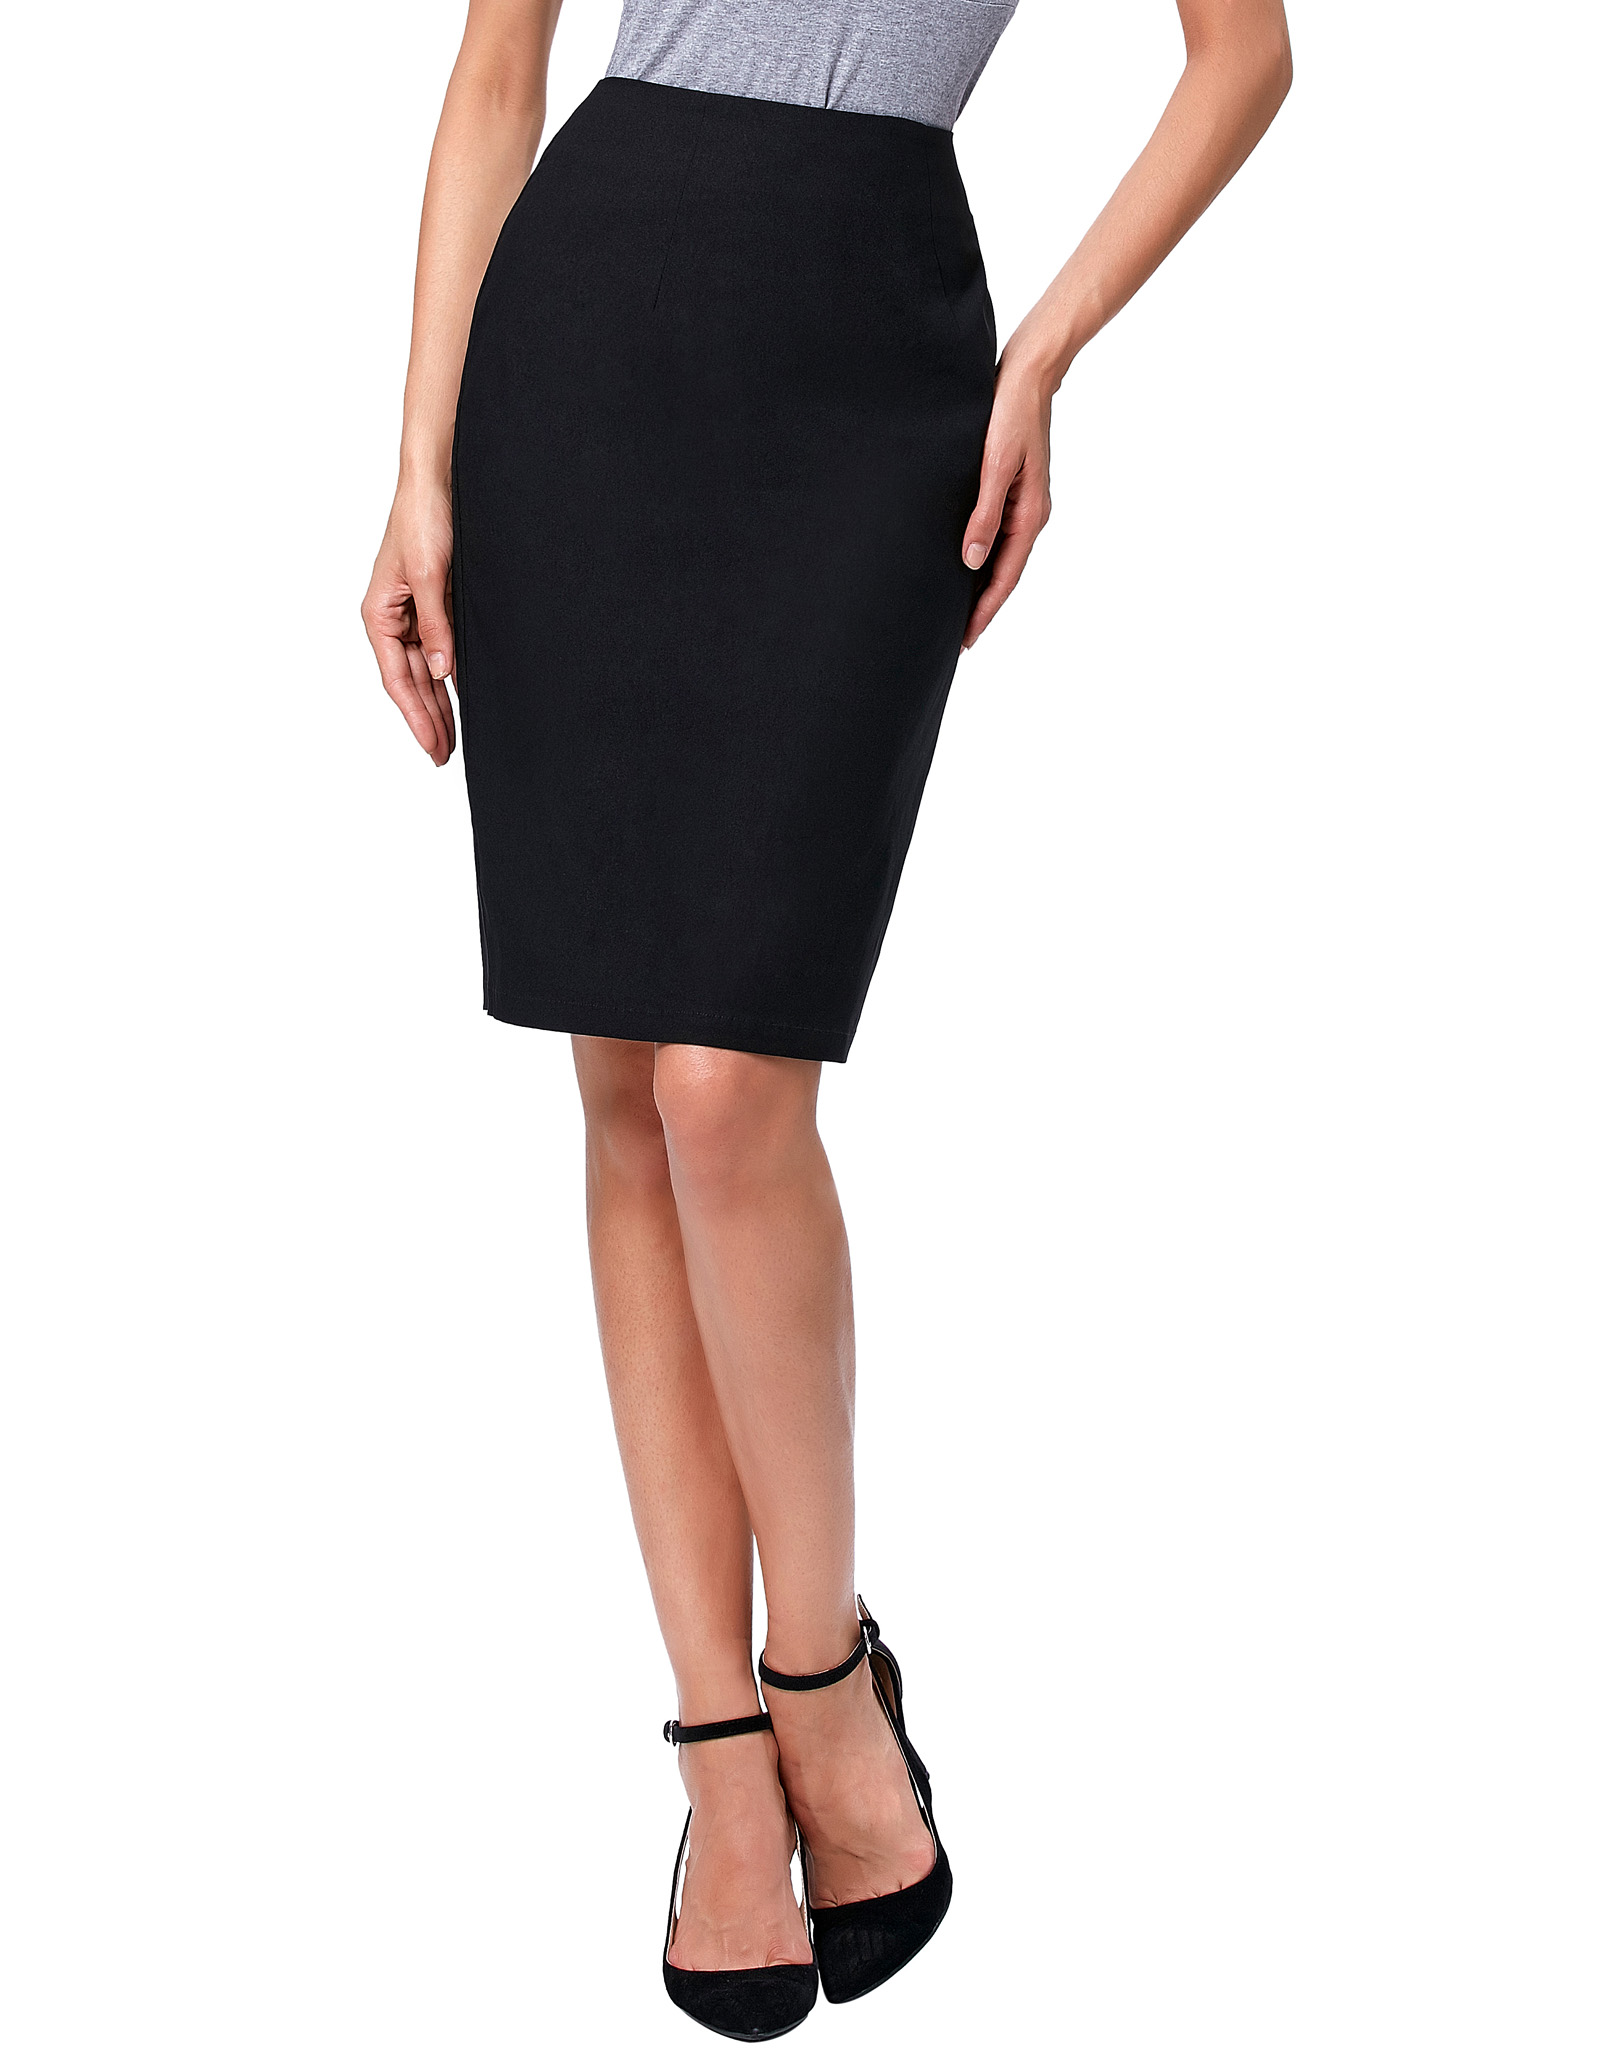 women office skirt 2018 summer OL High Stretchy Hips Wrapped mini Pencil Skirt